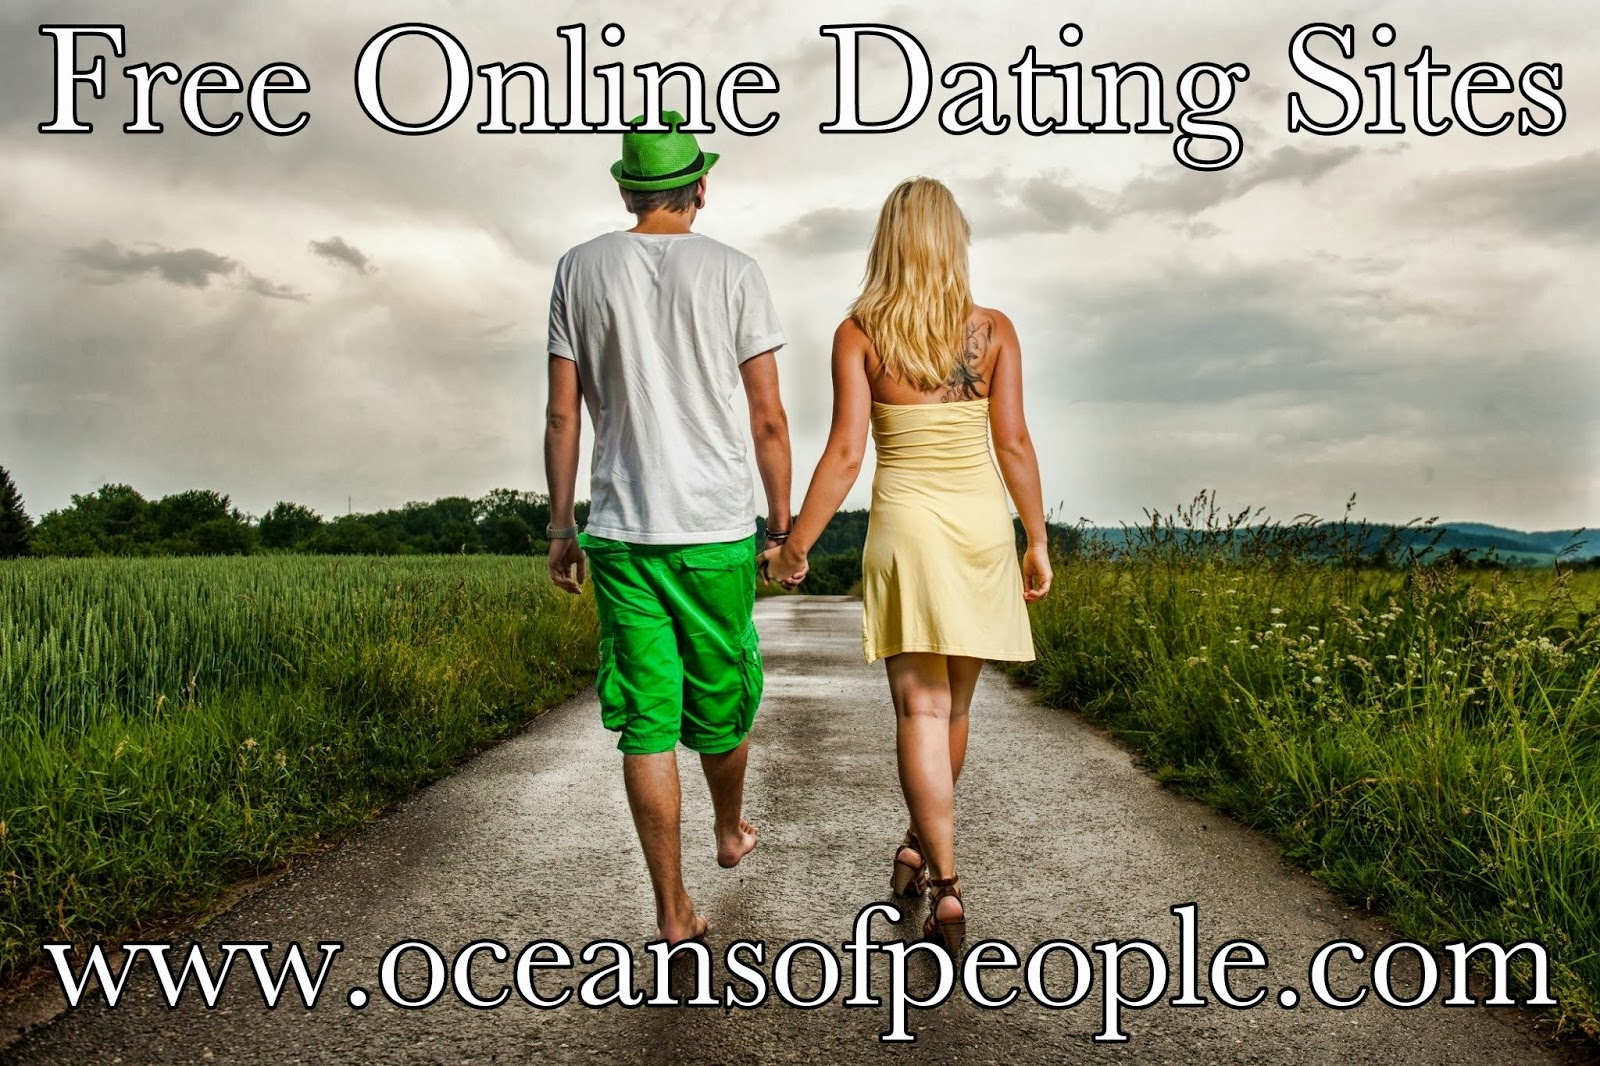 100% free online dating in coeymans Indian dating website - meet singles at 100% free indian dating sites for online chat, friendship and free online dating in india.